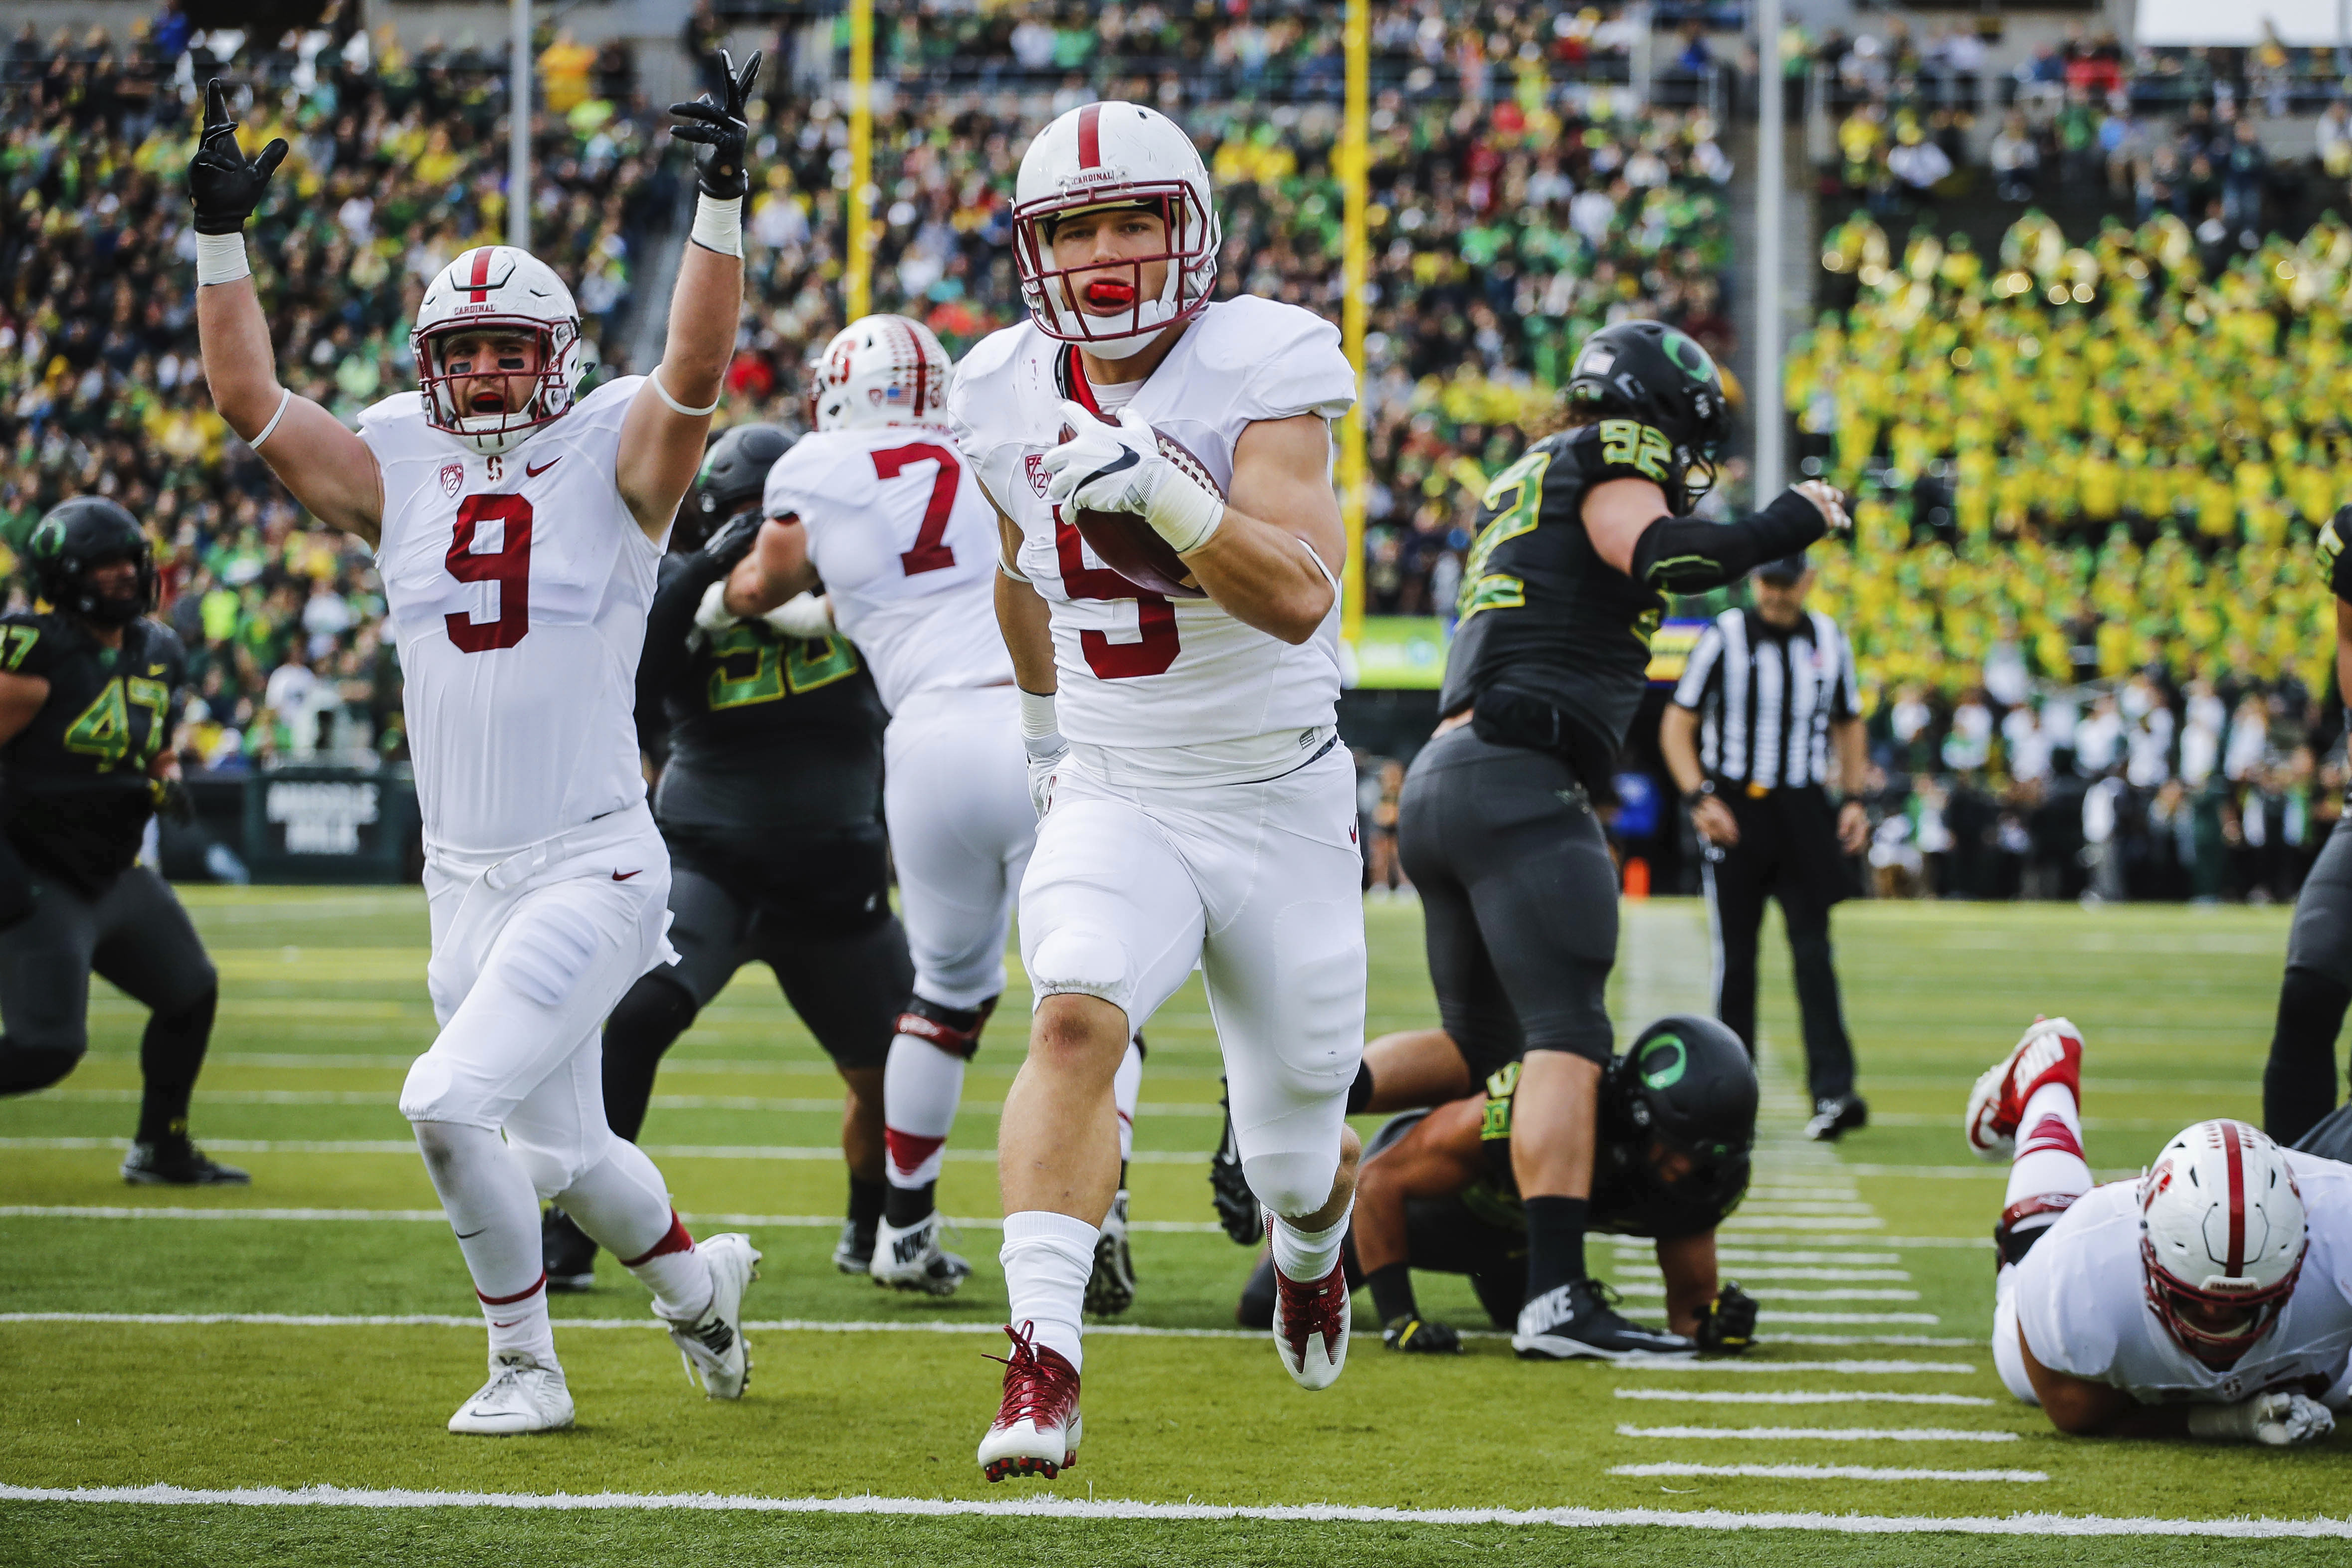 FILE - In this Nov. 12, 2016, file photo, Stanford running back Christian McCaffrey (5) runs for a touchdown in the first quarter of an NCAA college football game, in Eugene, Ore. McCaffrey is done playing college football. Stanfords star running back ann